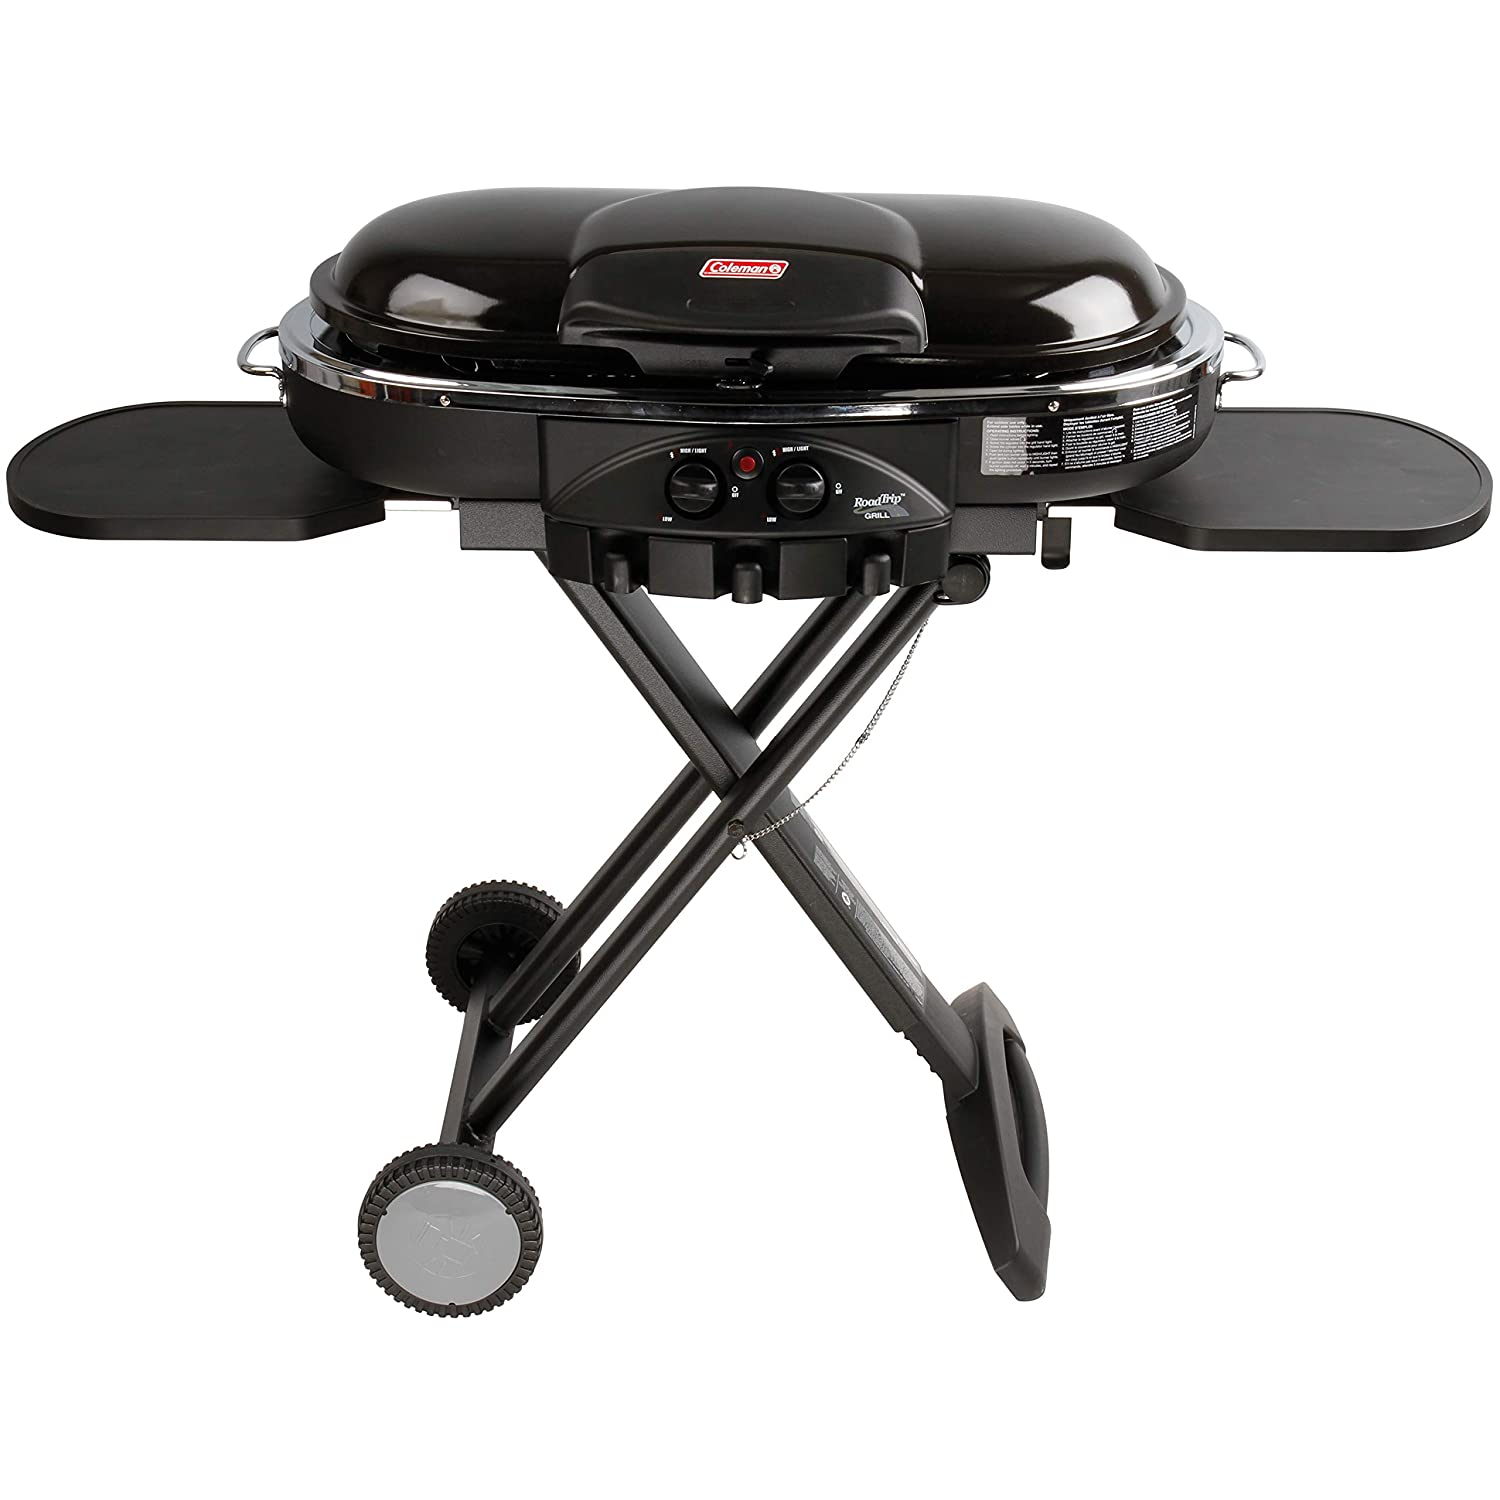 Amazon.com : Coleman Propane Grill | RoadTrip LXE Portable Gas Grill :  Camping Stove Grills : Sports & Outdoors